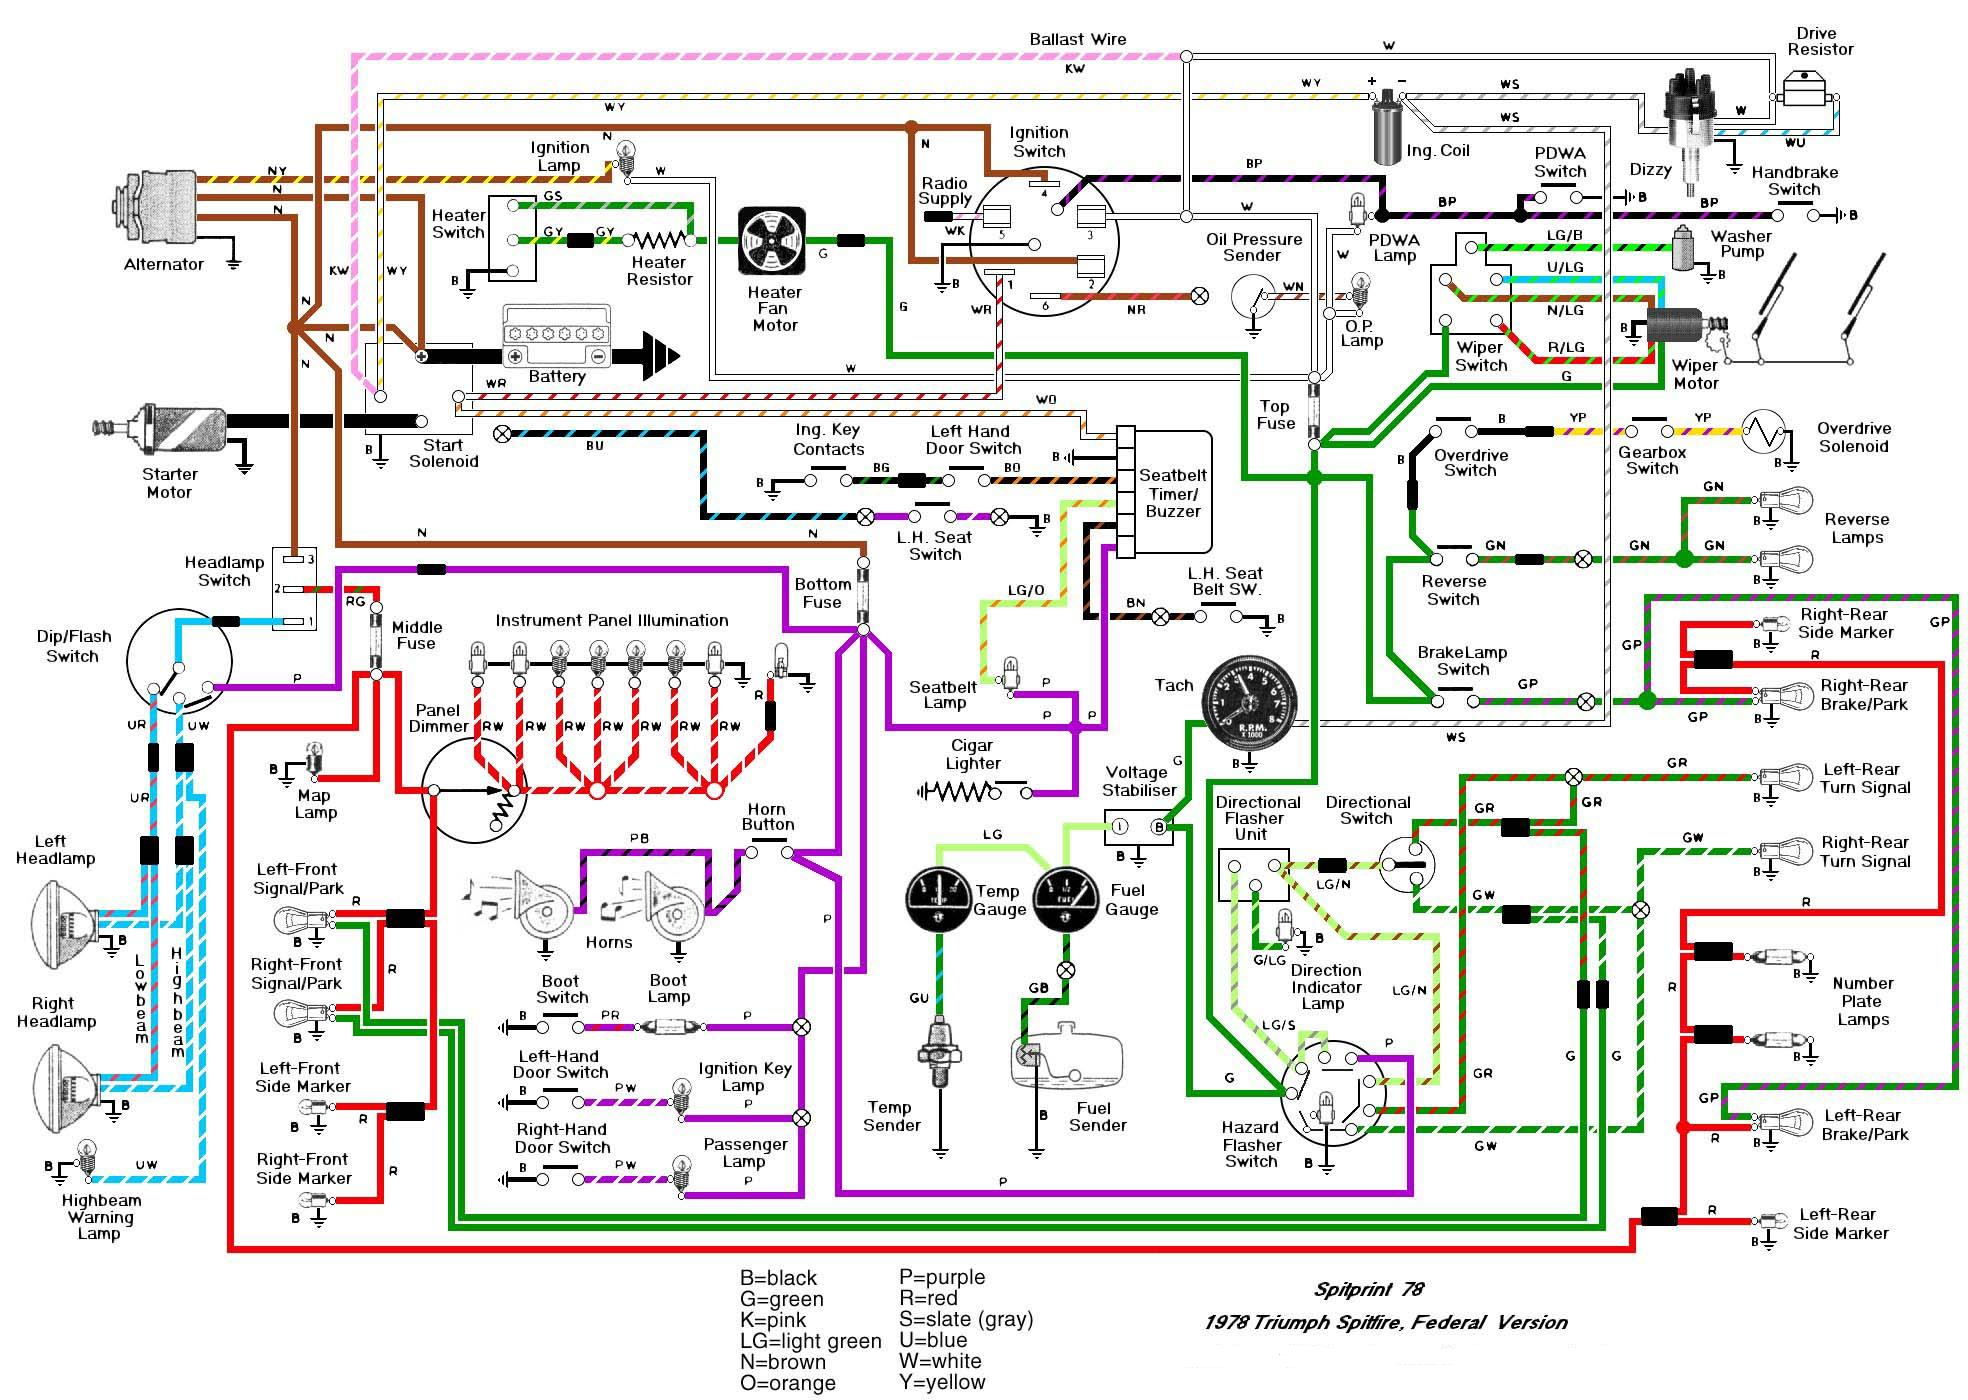 Car Wiring Diagram Pdf   Fusebox and Wiring Diagram layout prove ...